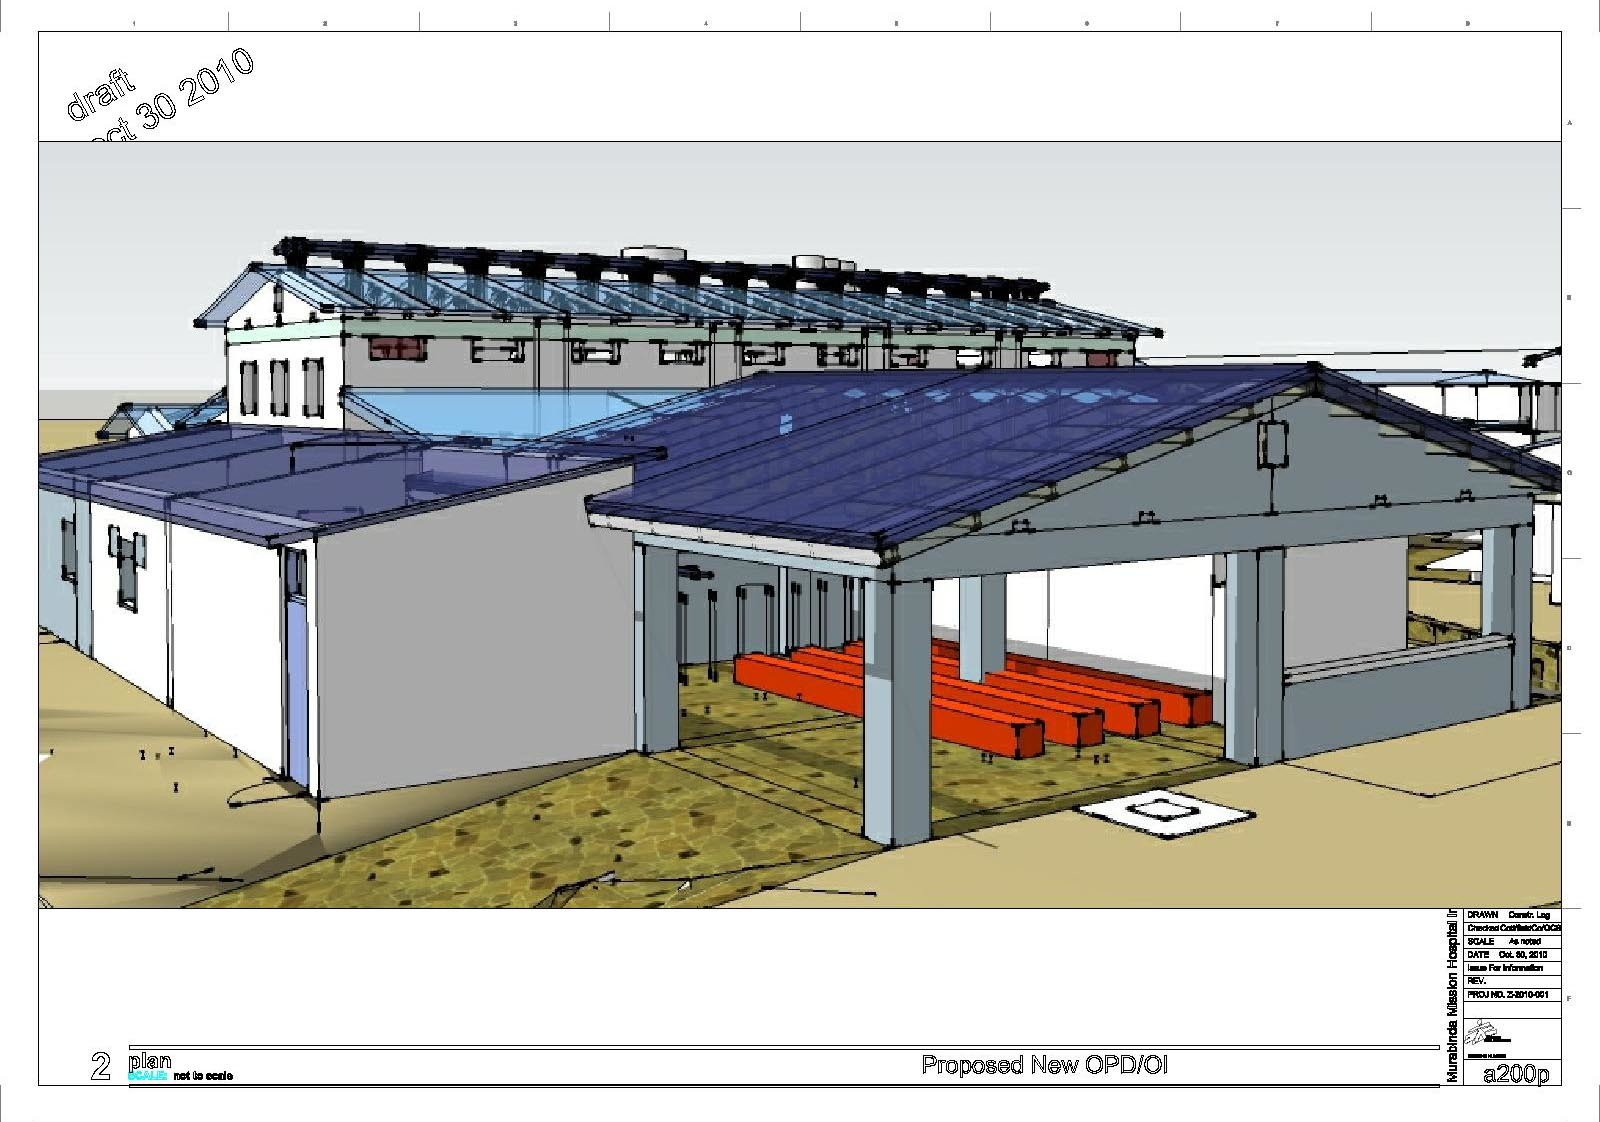 Proposed conceptual modifications to existing hospital.